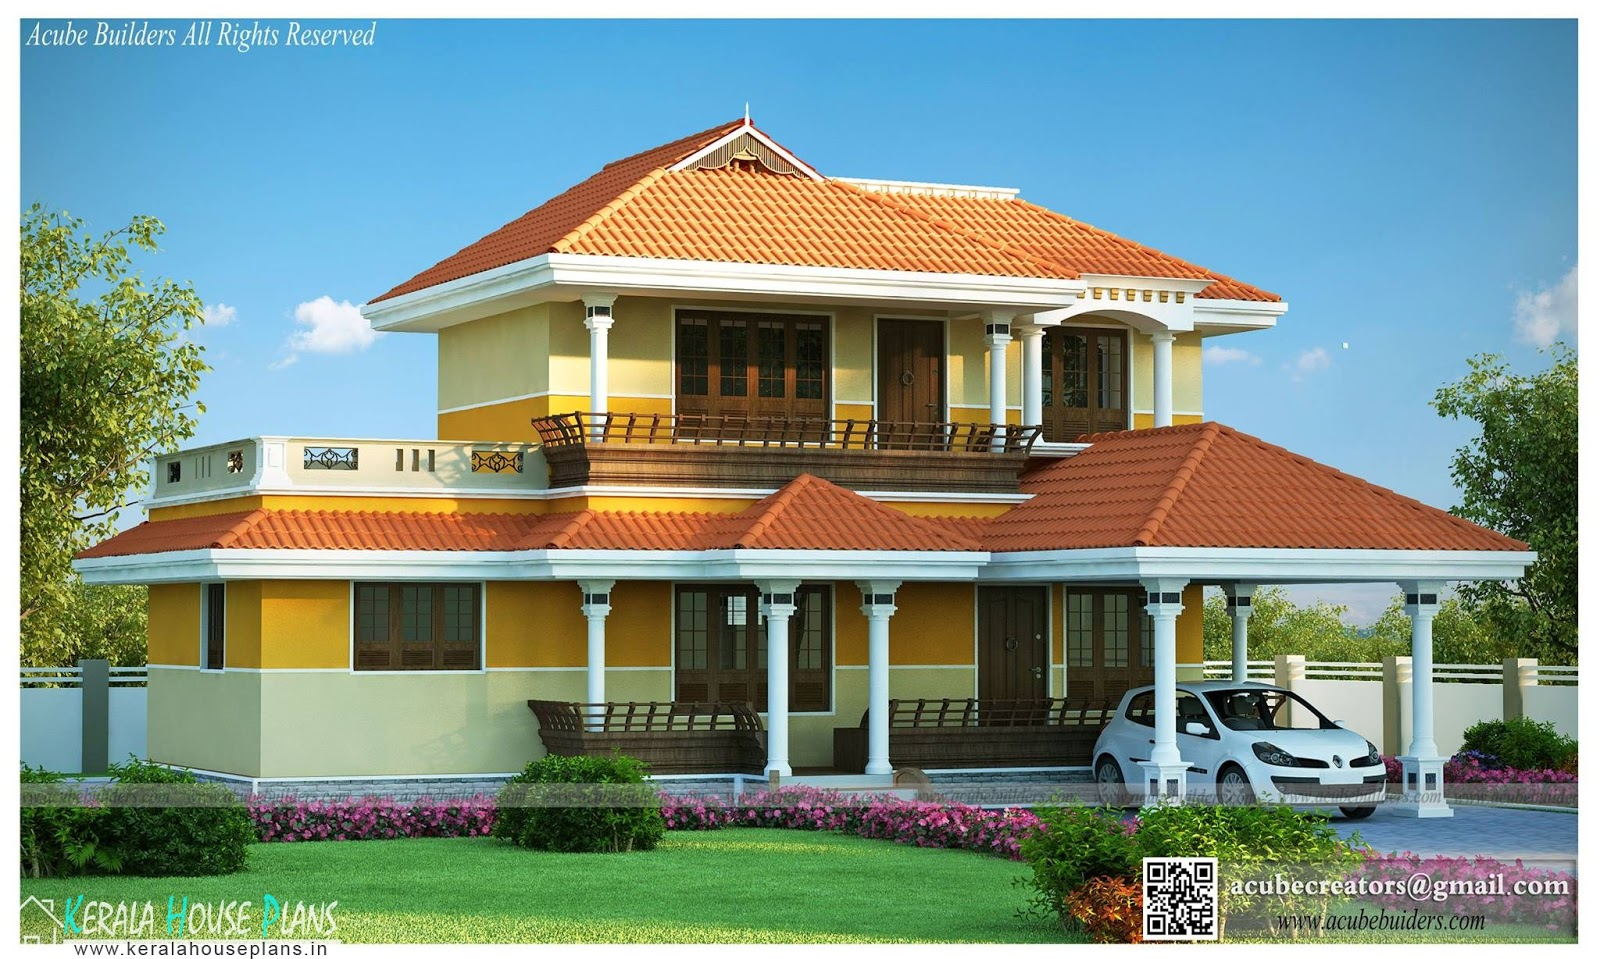 Traditional house plans in kerala kerala house plans for Traditional home designs